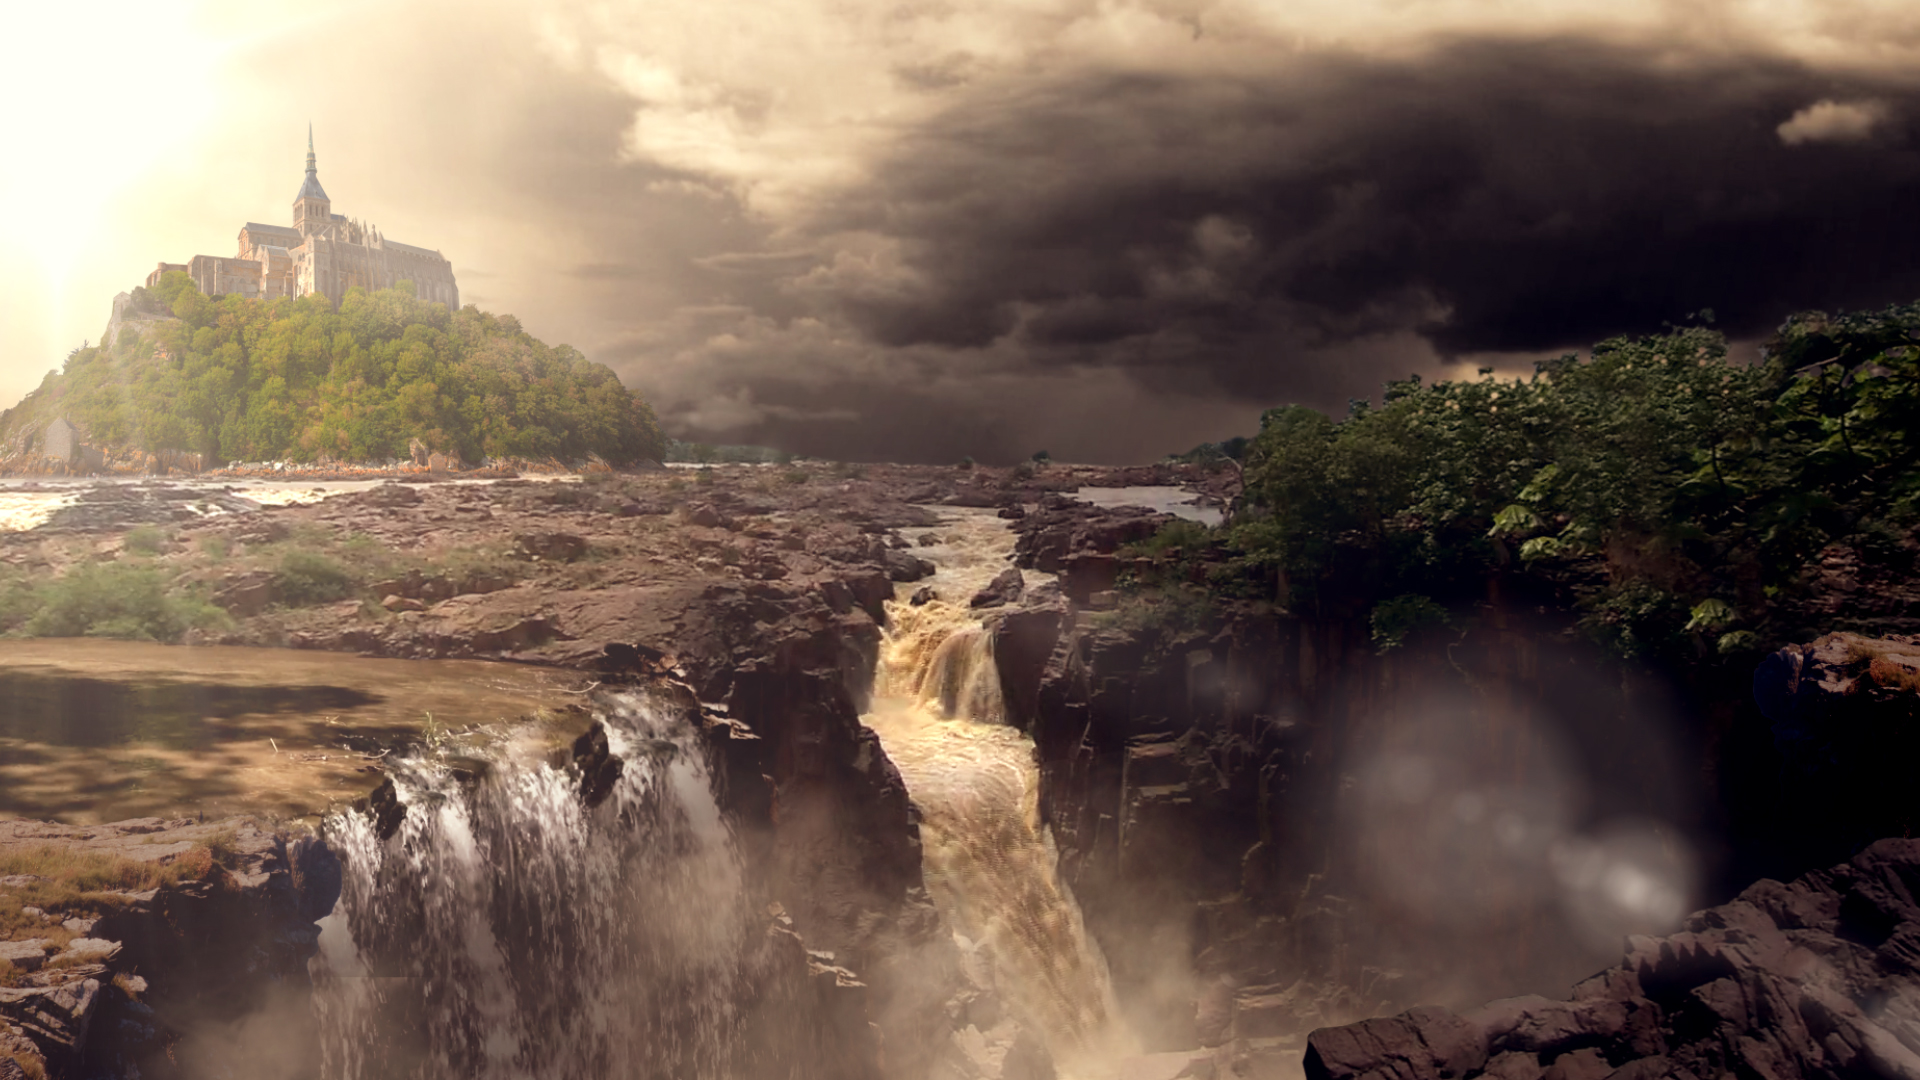 Matte painting dark raneh falls by aqwmim on deviantart for Matte painting